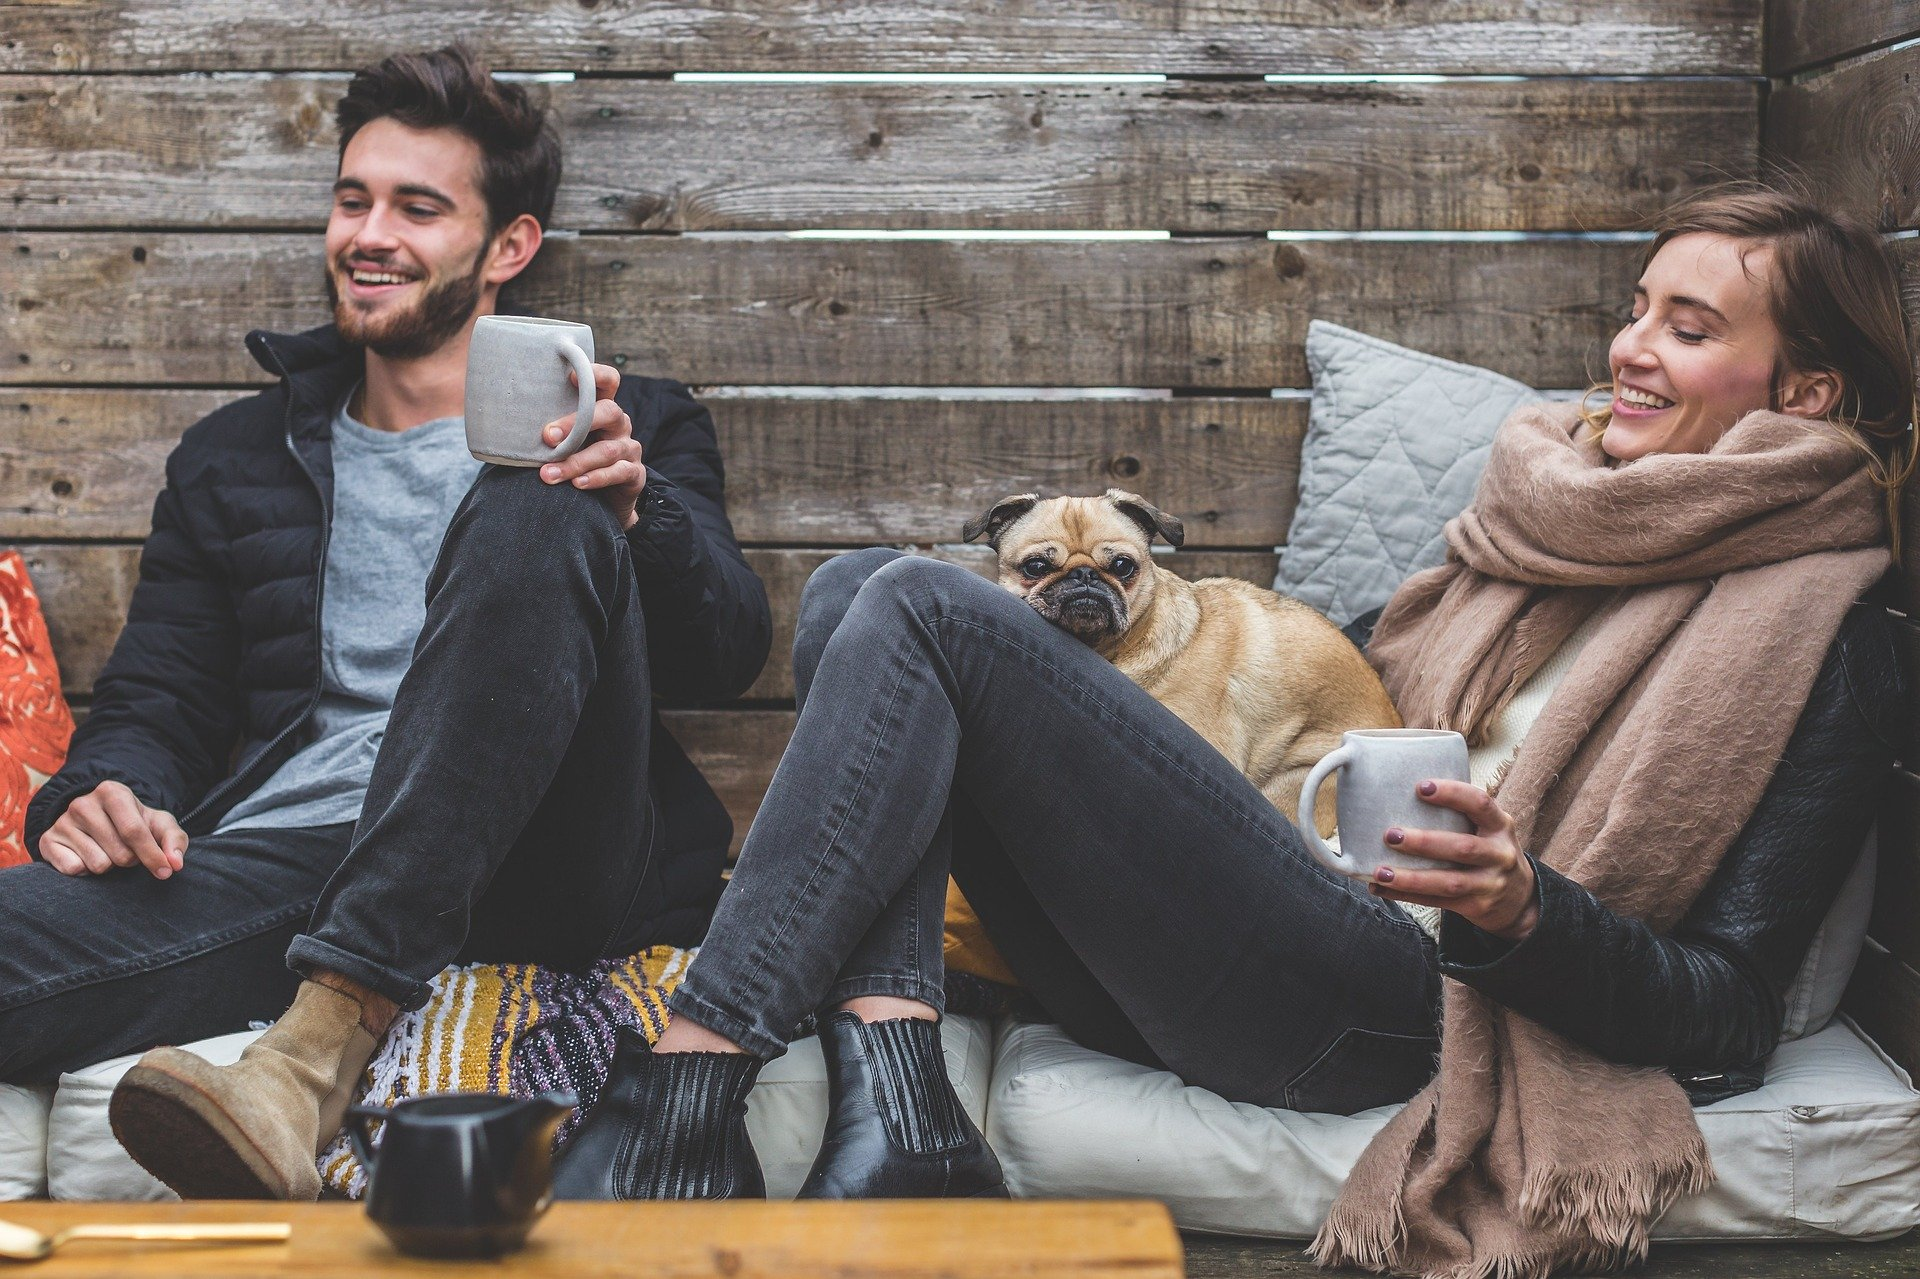 Two people relaxing with a dog and enjoying a conversation